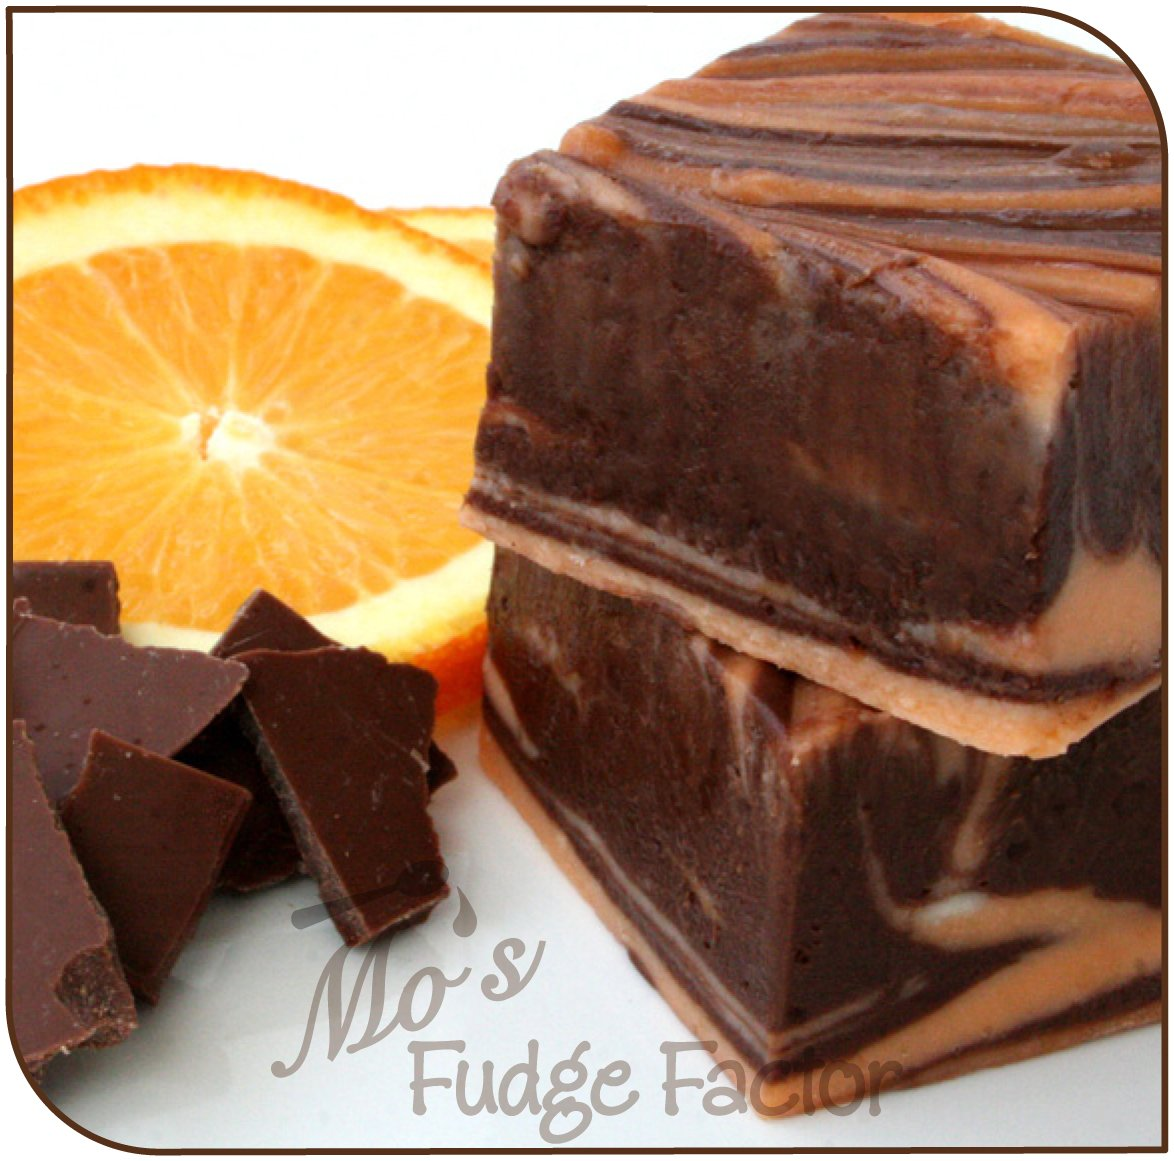 Mo's Fudge Factor, Dark Chocolate Orange Fudge, 2 Pound by Mo's Fudge Factor